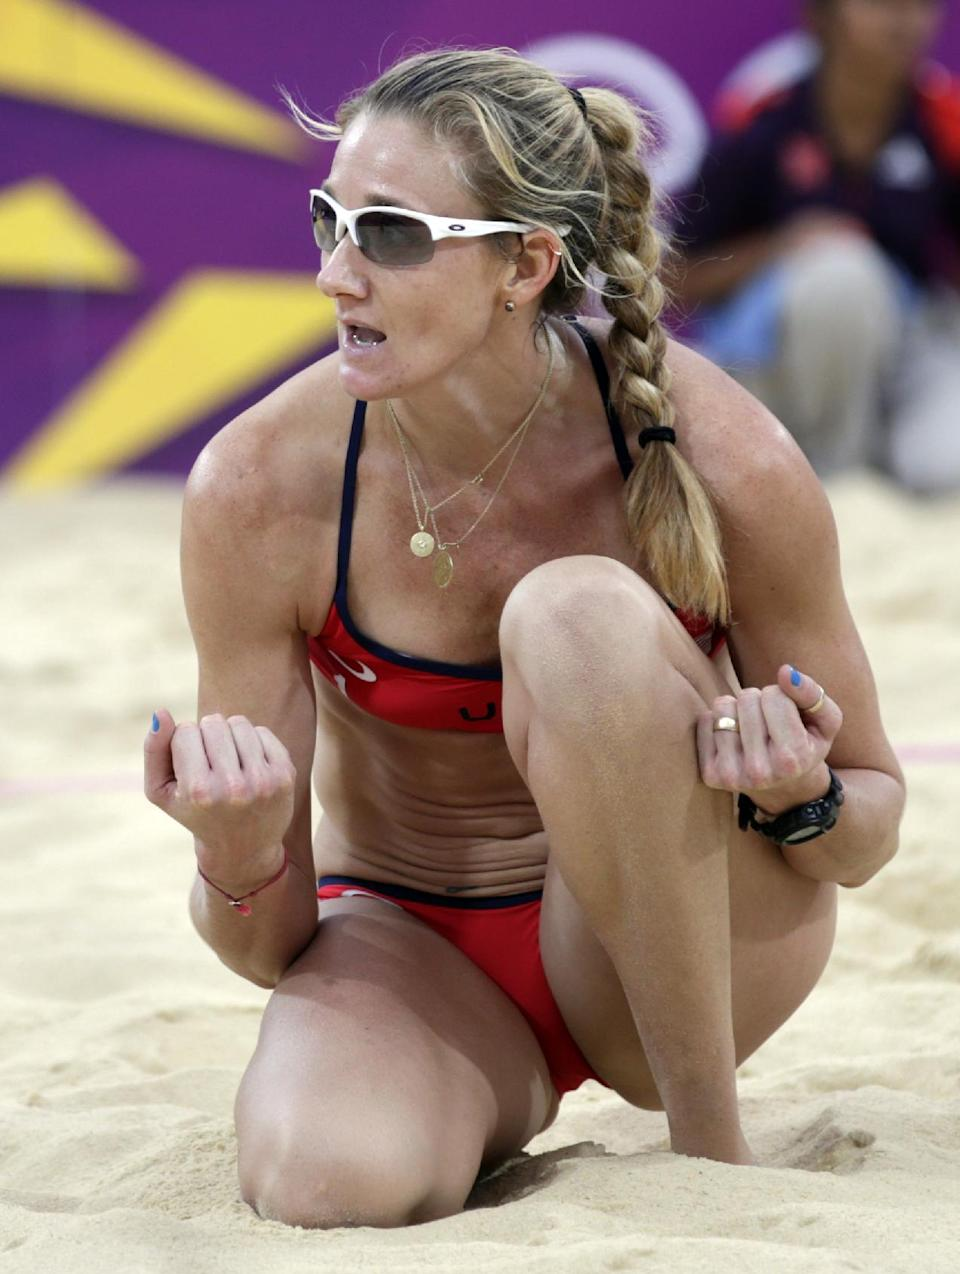 Kerri Walsh Jennings of the United States reacts after winning the first set during a women's semi-final beach volleyball match against China at the 2012 Summer Olympics, Tuesday, Aug. 7, 2012, in London. (AP Photo/Dave Martin)